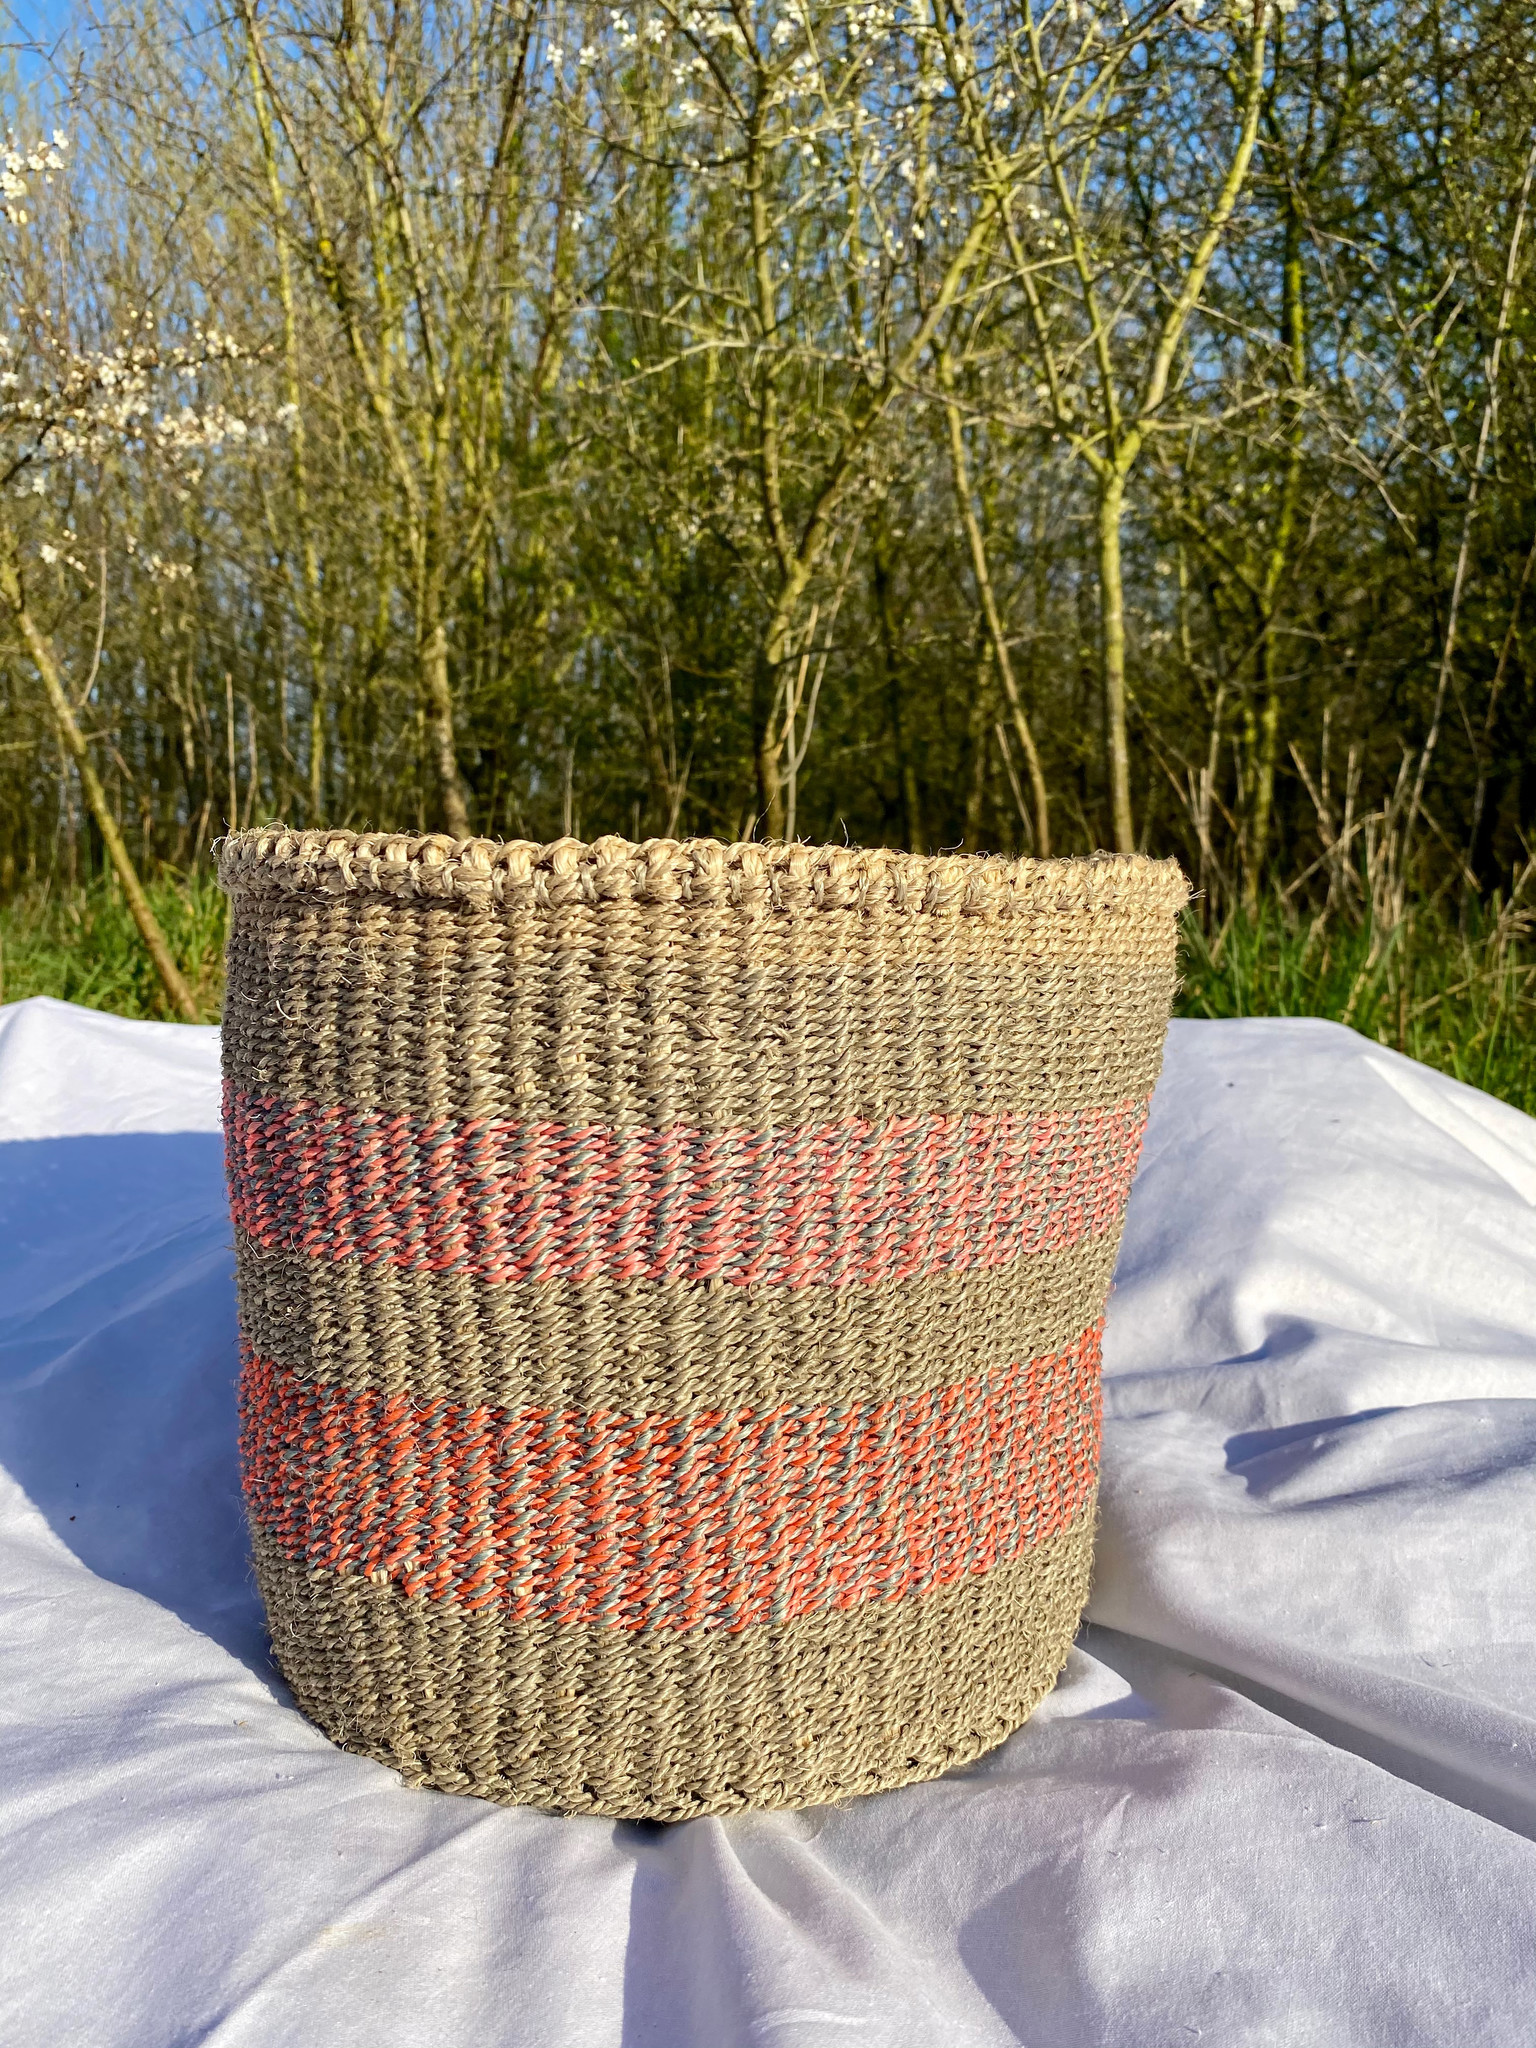 Hadithi Basket - Medium colorfull / natural-1